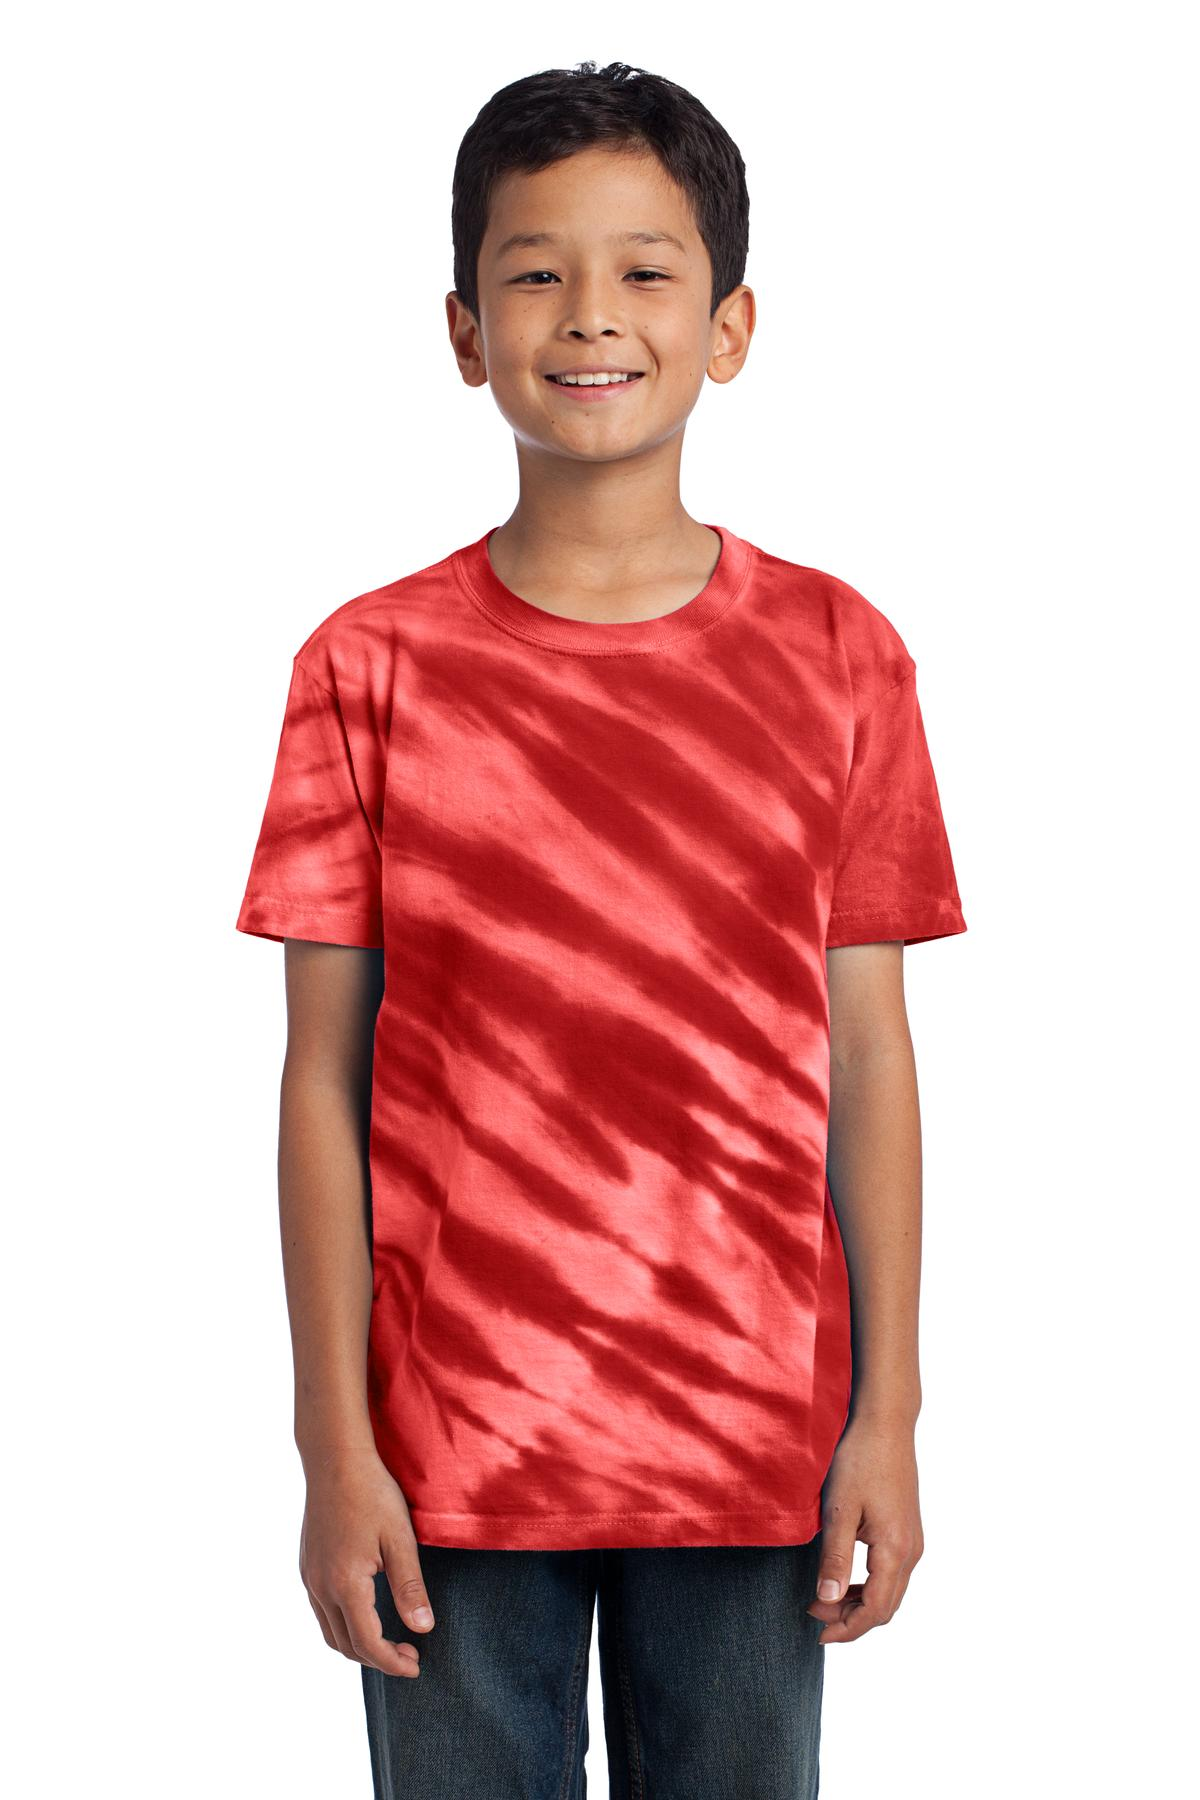 Port & Company Youth Essential Tiger Stripe Tie-Dye Tee. Red. M.